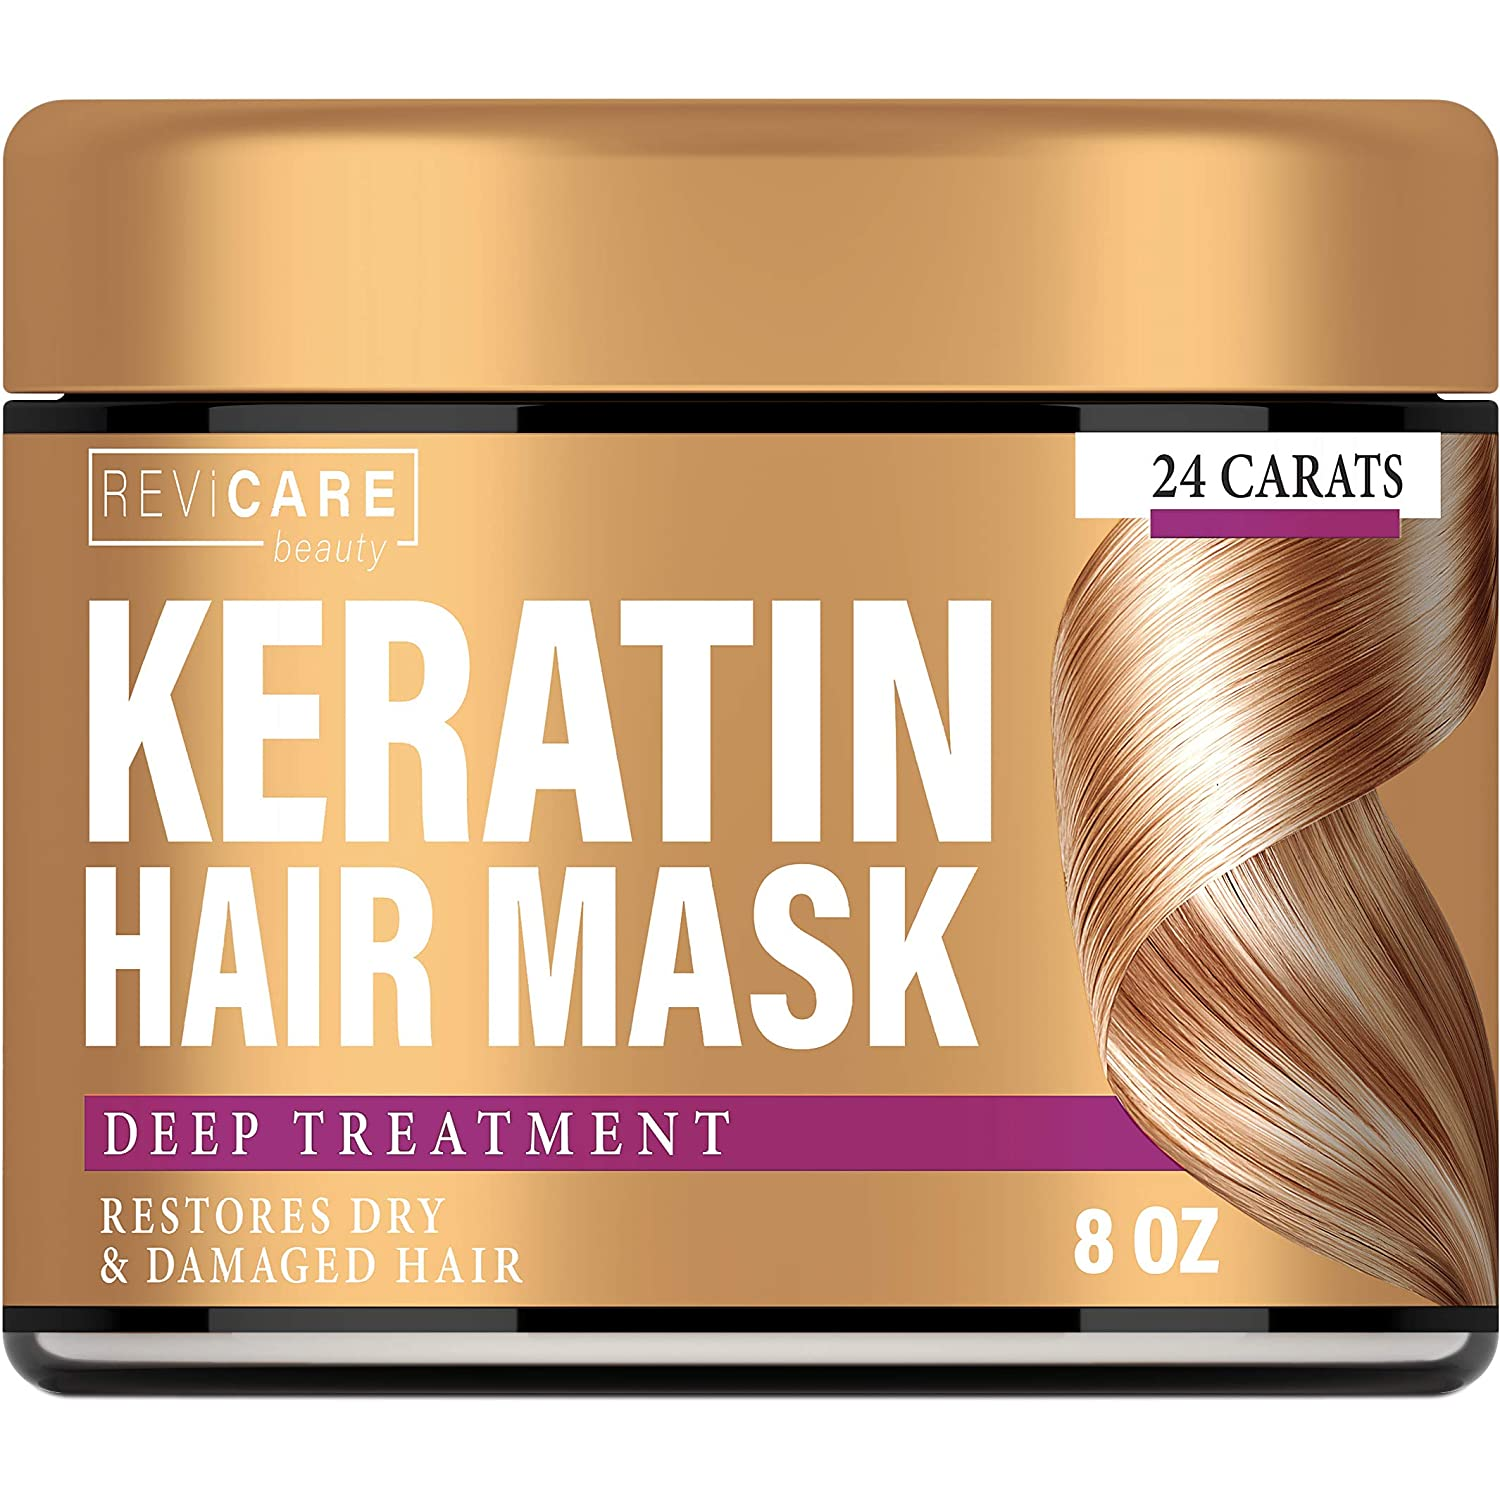 Keratin Hair Mask - Restores Dry & Damaged Hair - Effective Keratin Treatment with Coconut Oil, Retinol & Aloe Vera - Made in USA - Moisturizing Anti Frizz Hair Mask - Powerful Keratin Complex